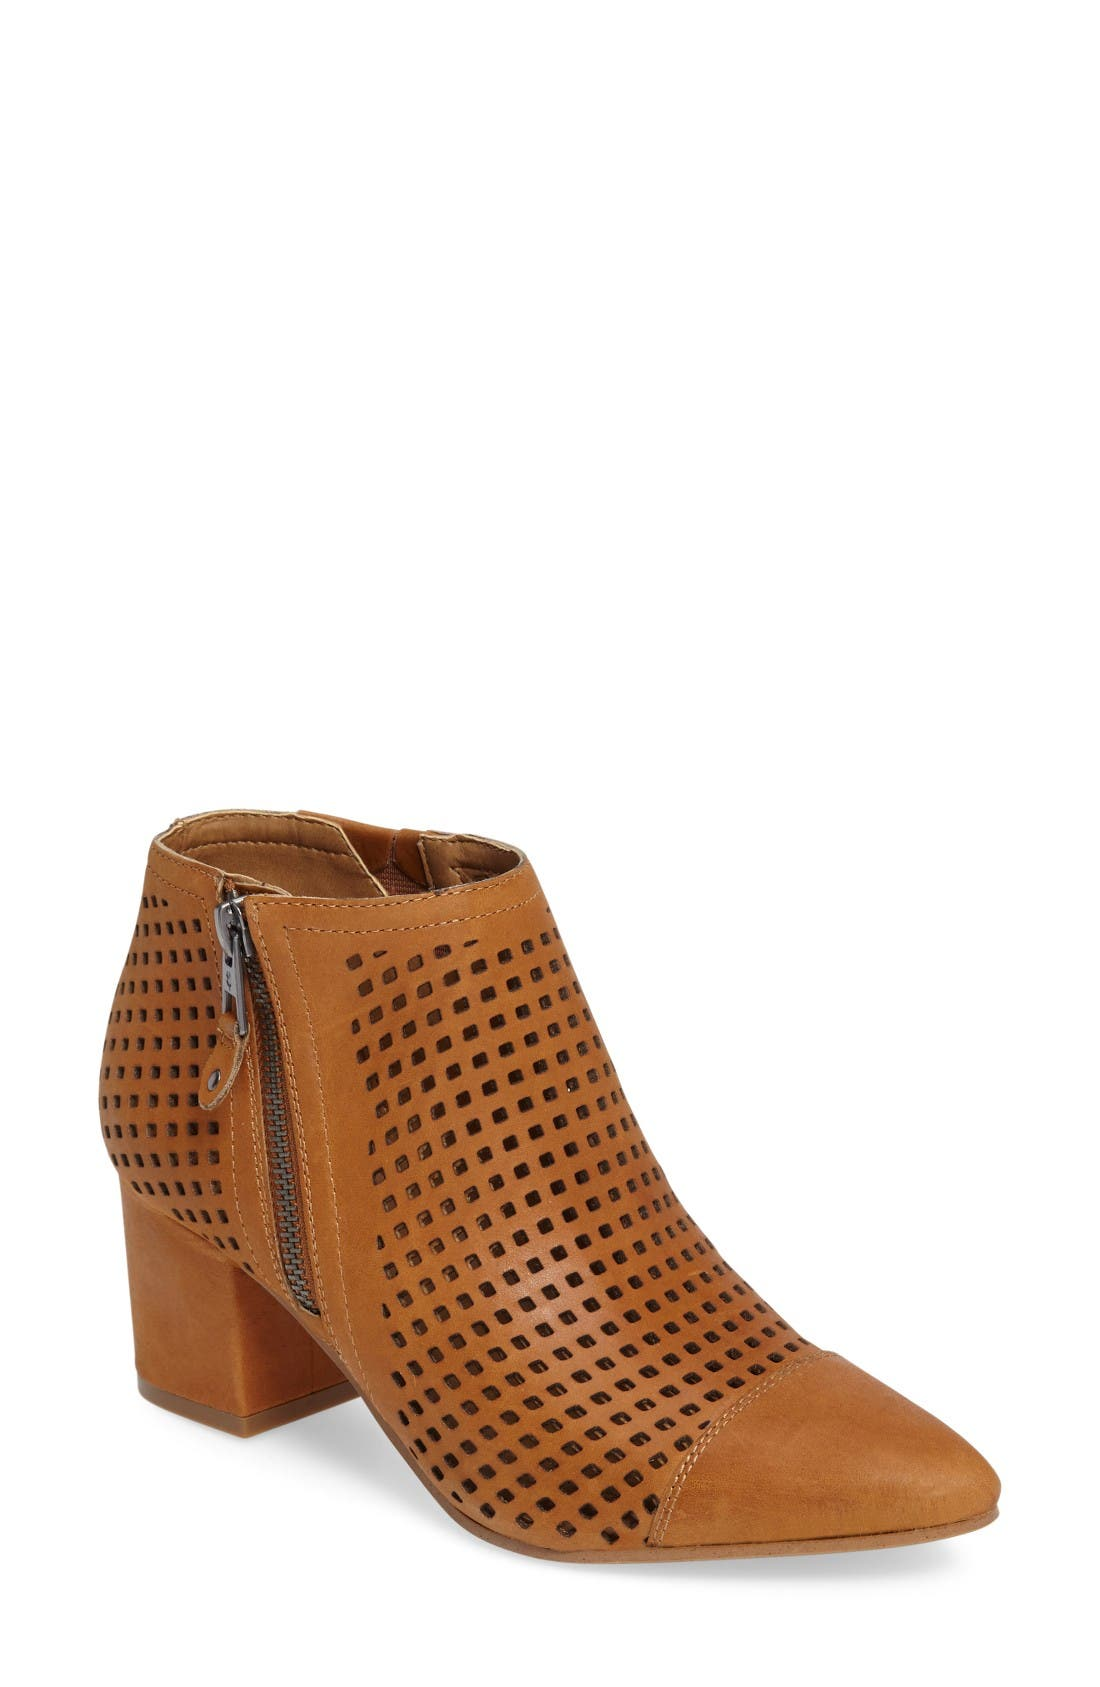 Alternate Image 1 Selected - Lucky Brand Jakelyn Pointy Toe Bootie (Women)